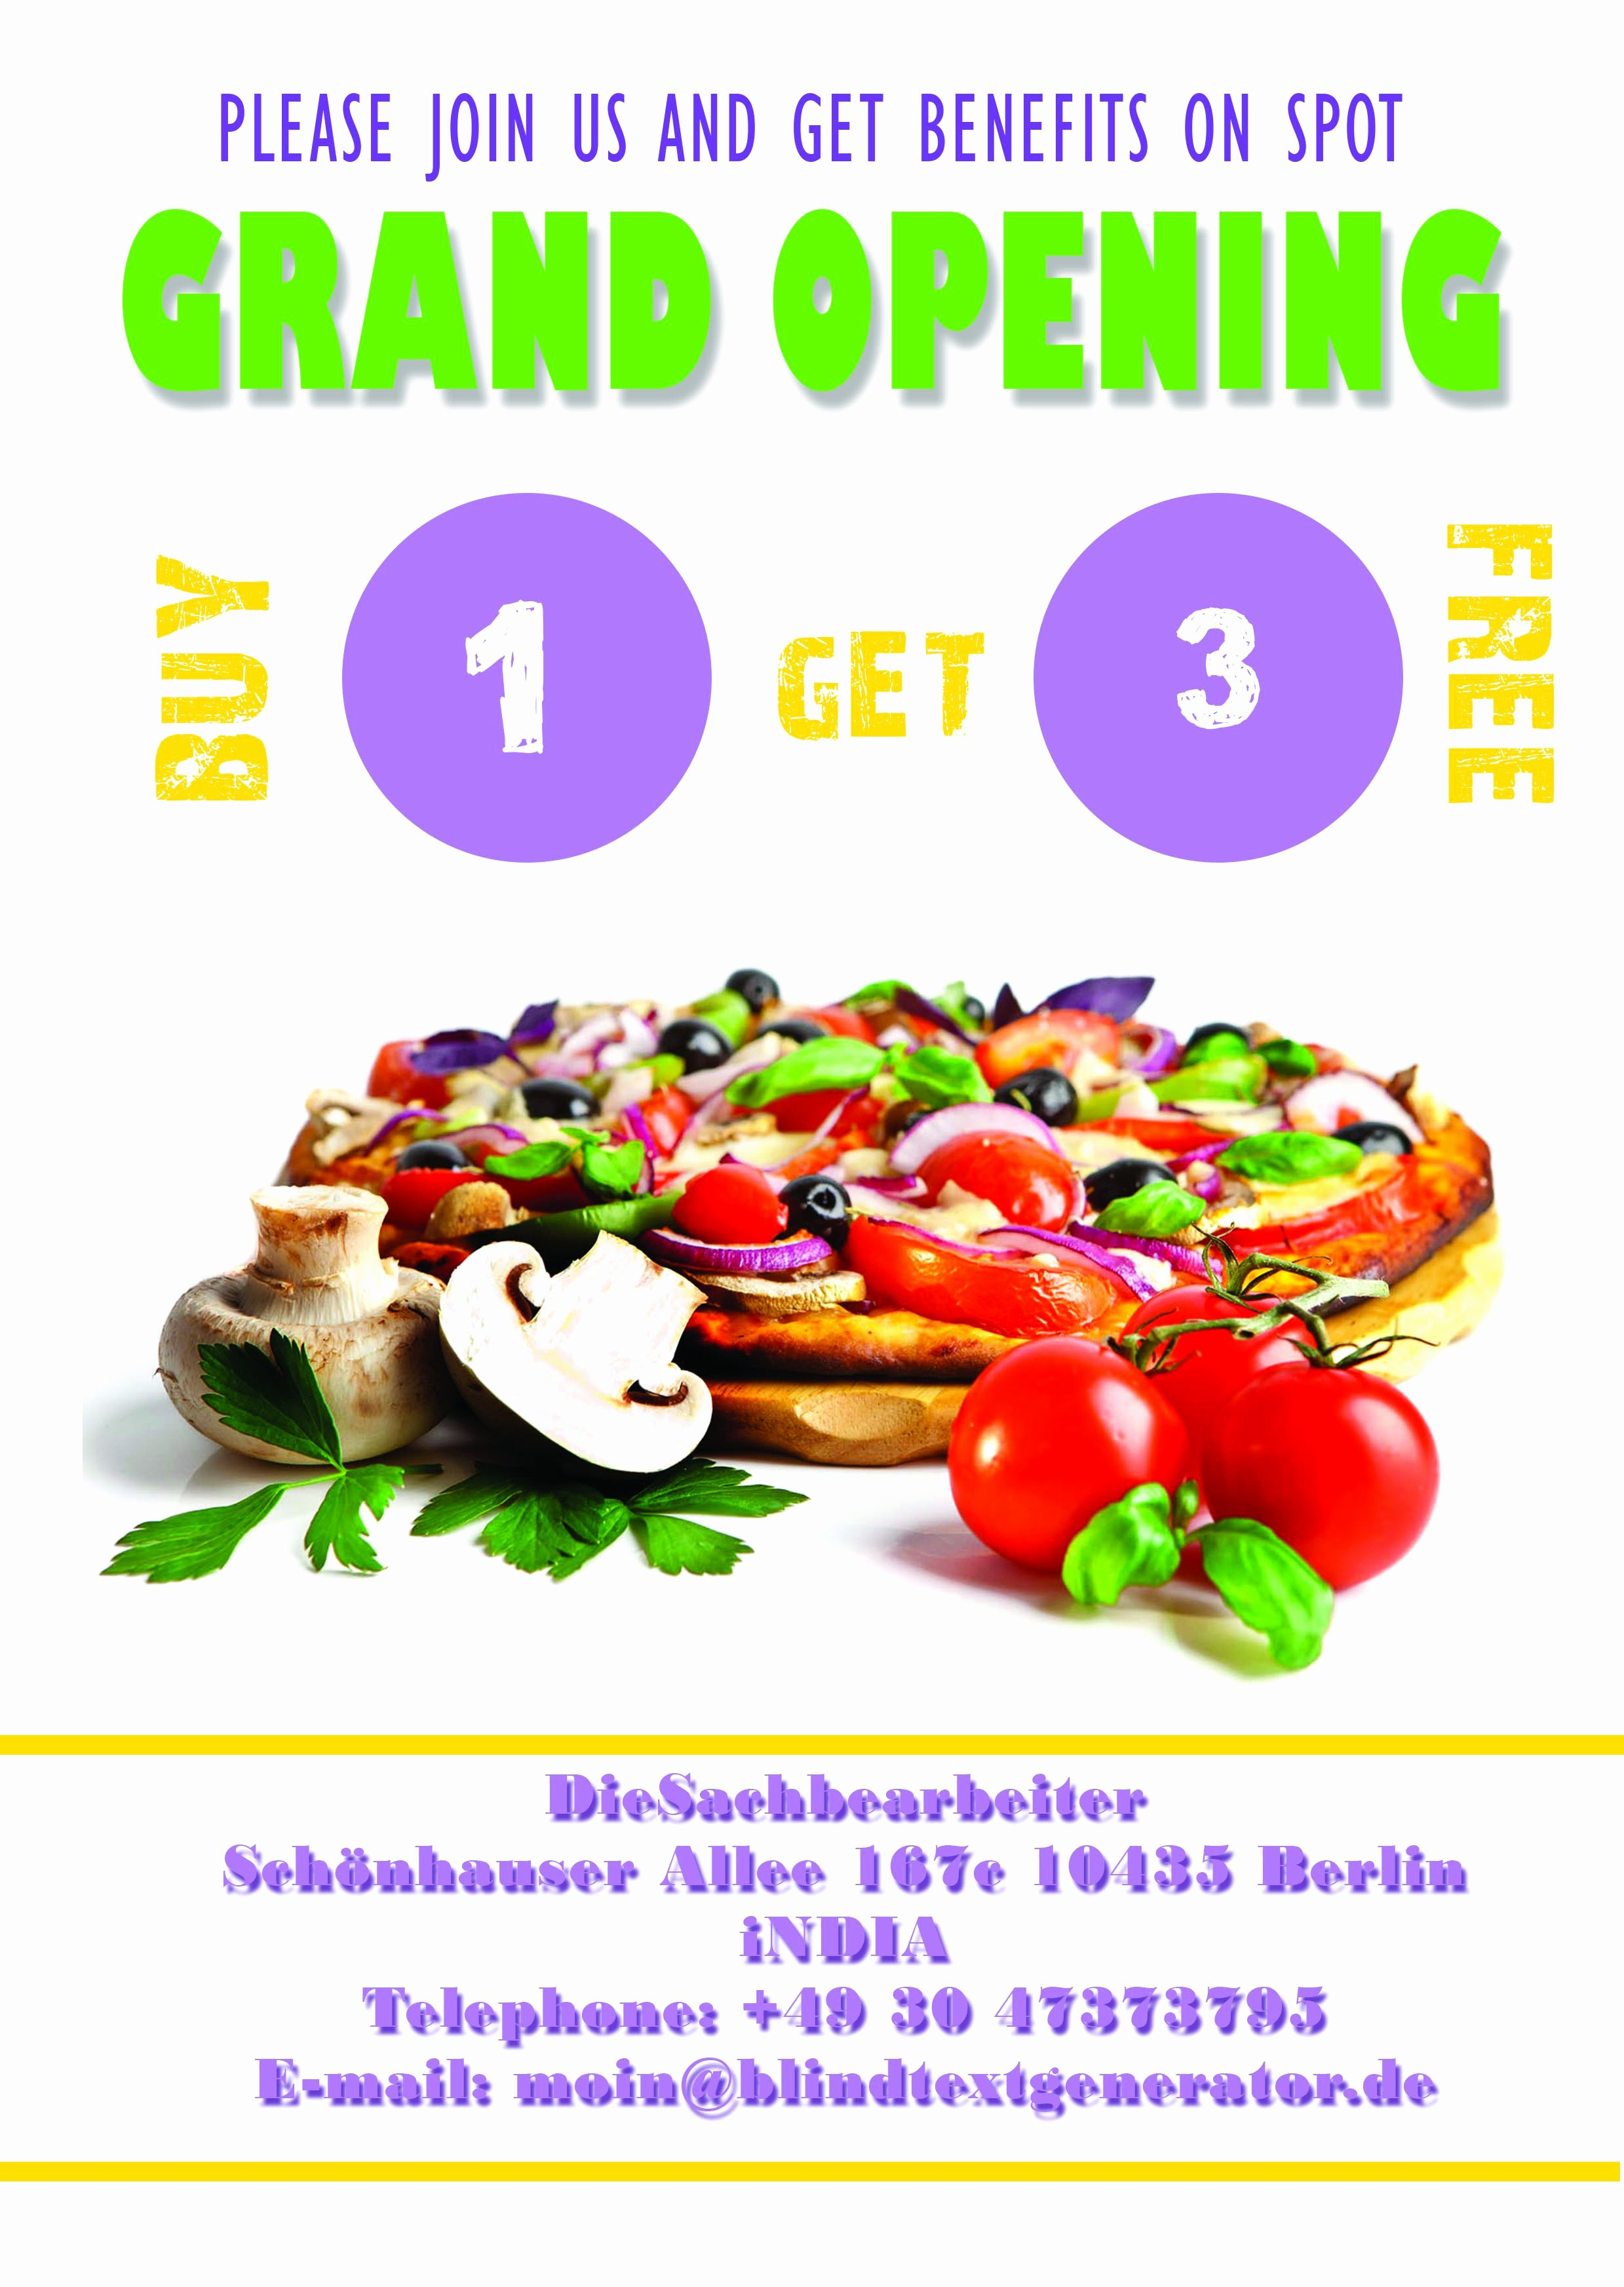 Grand Opening Flyer Template New 20 Grand Opening Flyer Templates Free Demplates